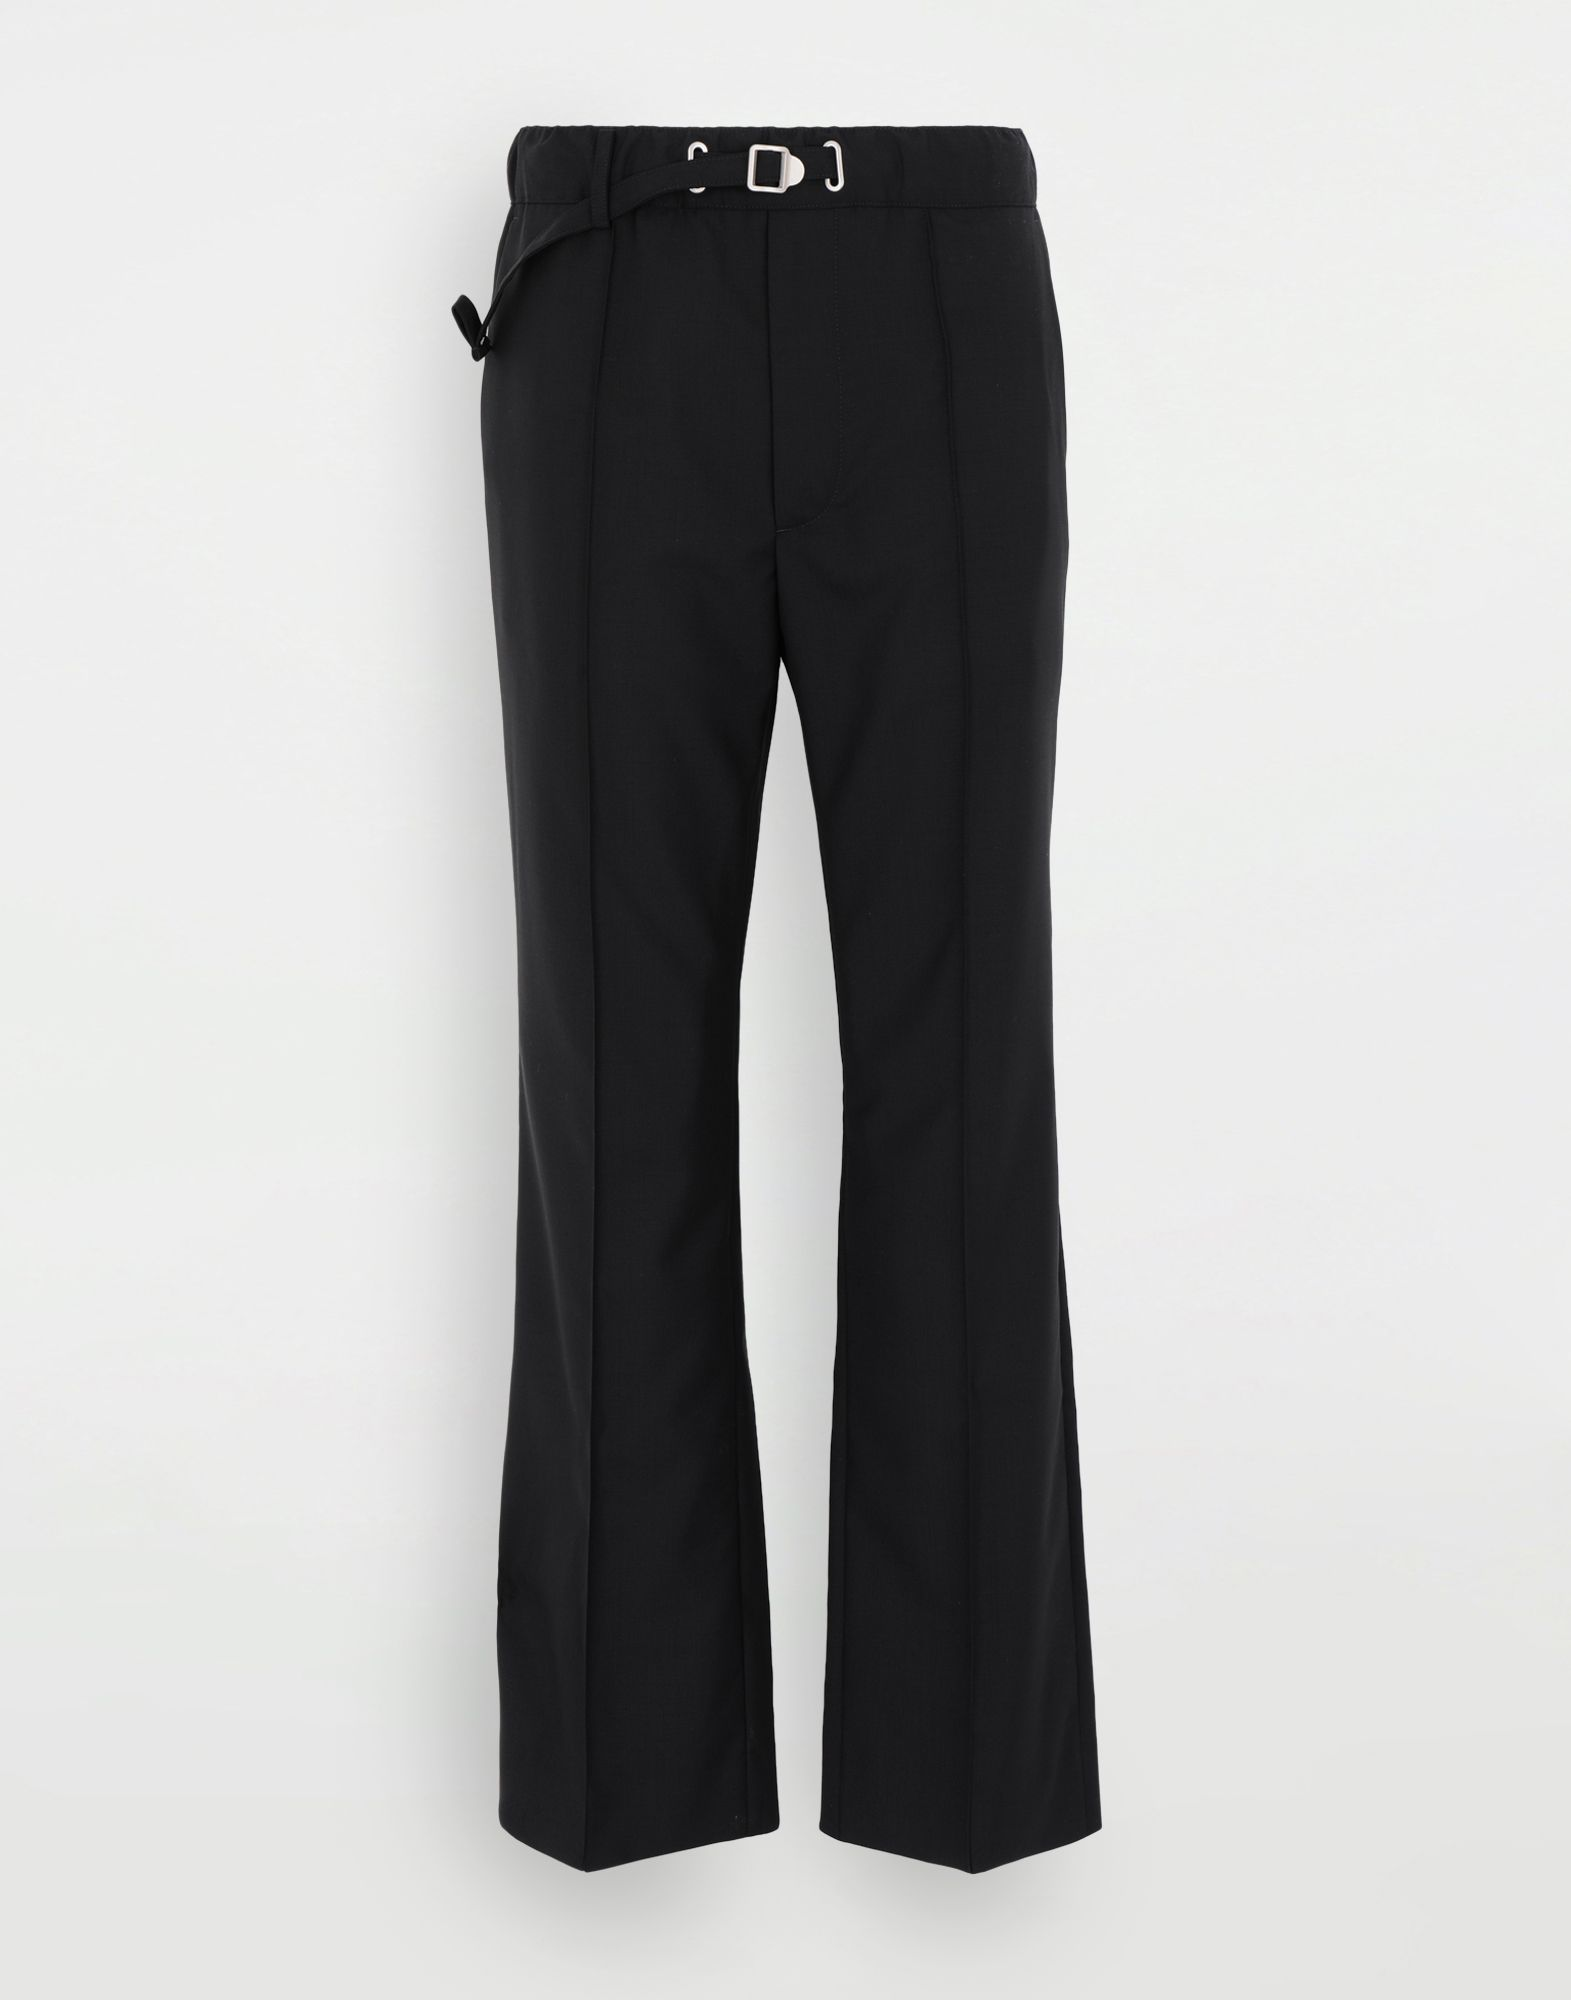 MAISON MARGIELA Adjustable wool trousers Trousers Man f